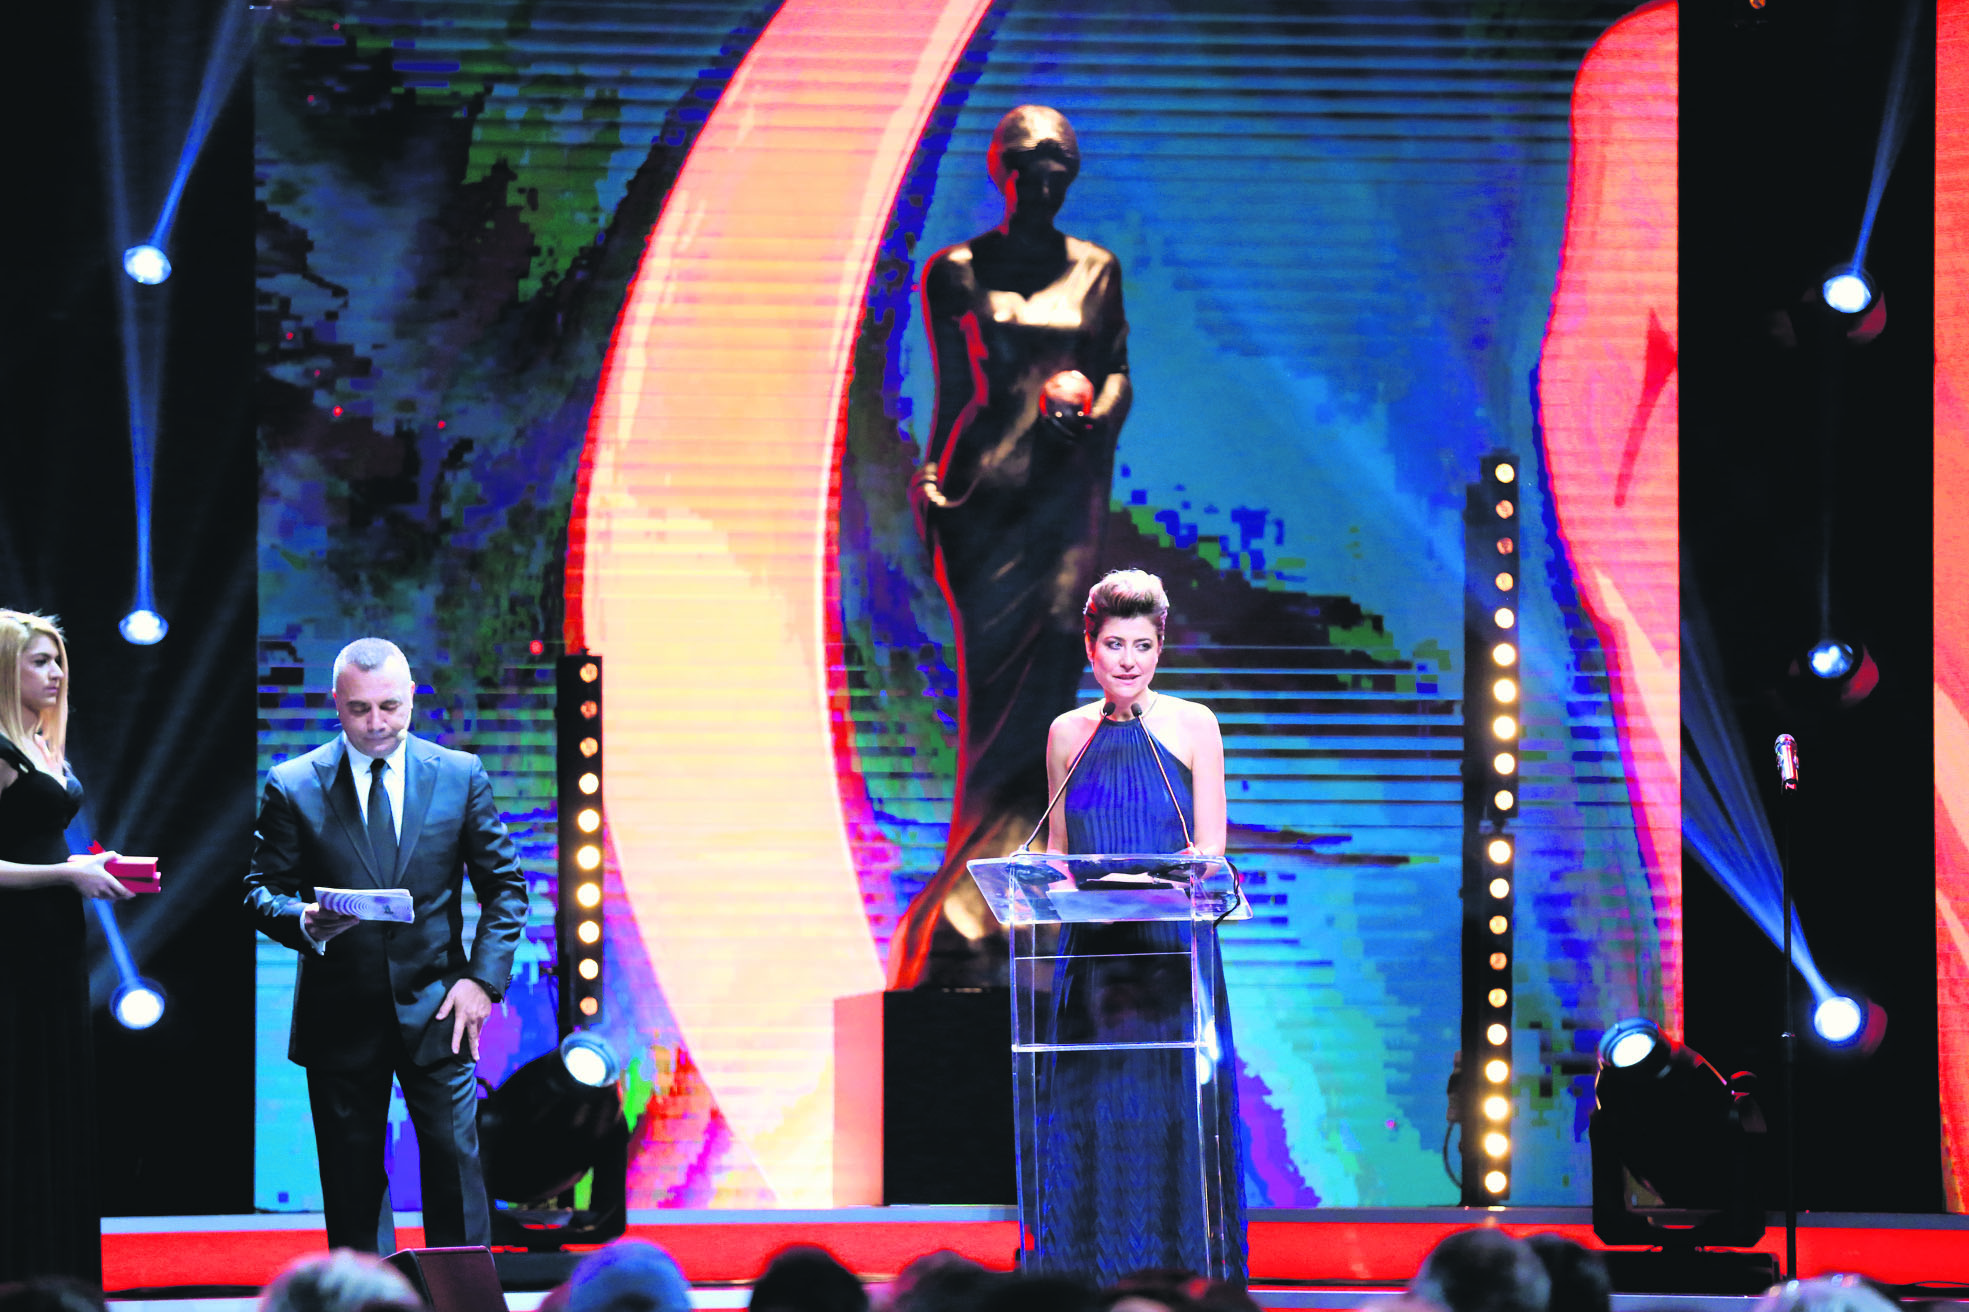 The Antalya Film Festival delivers the Golden Orange awards